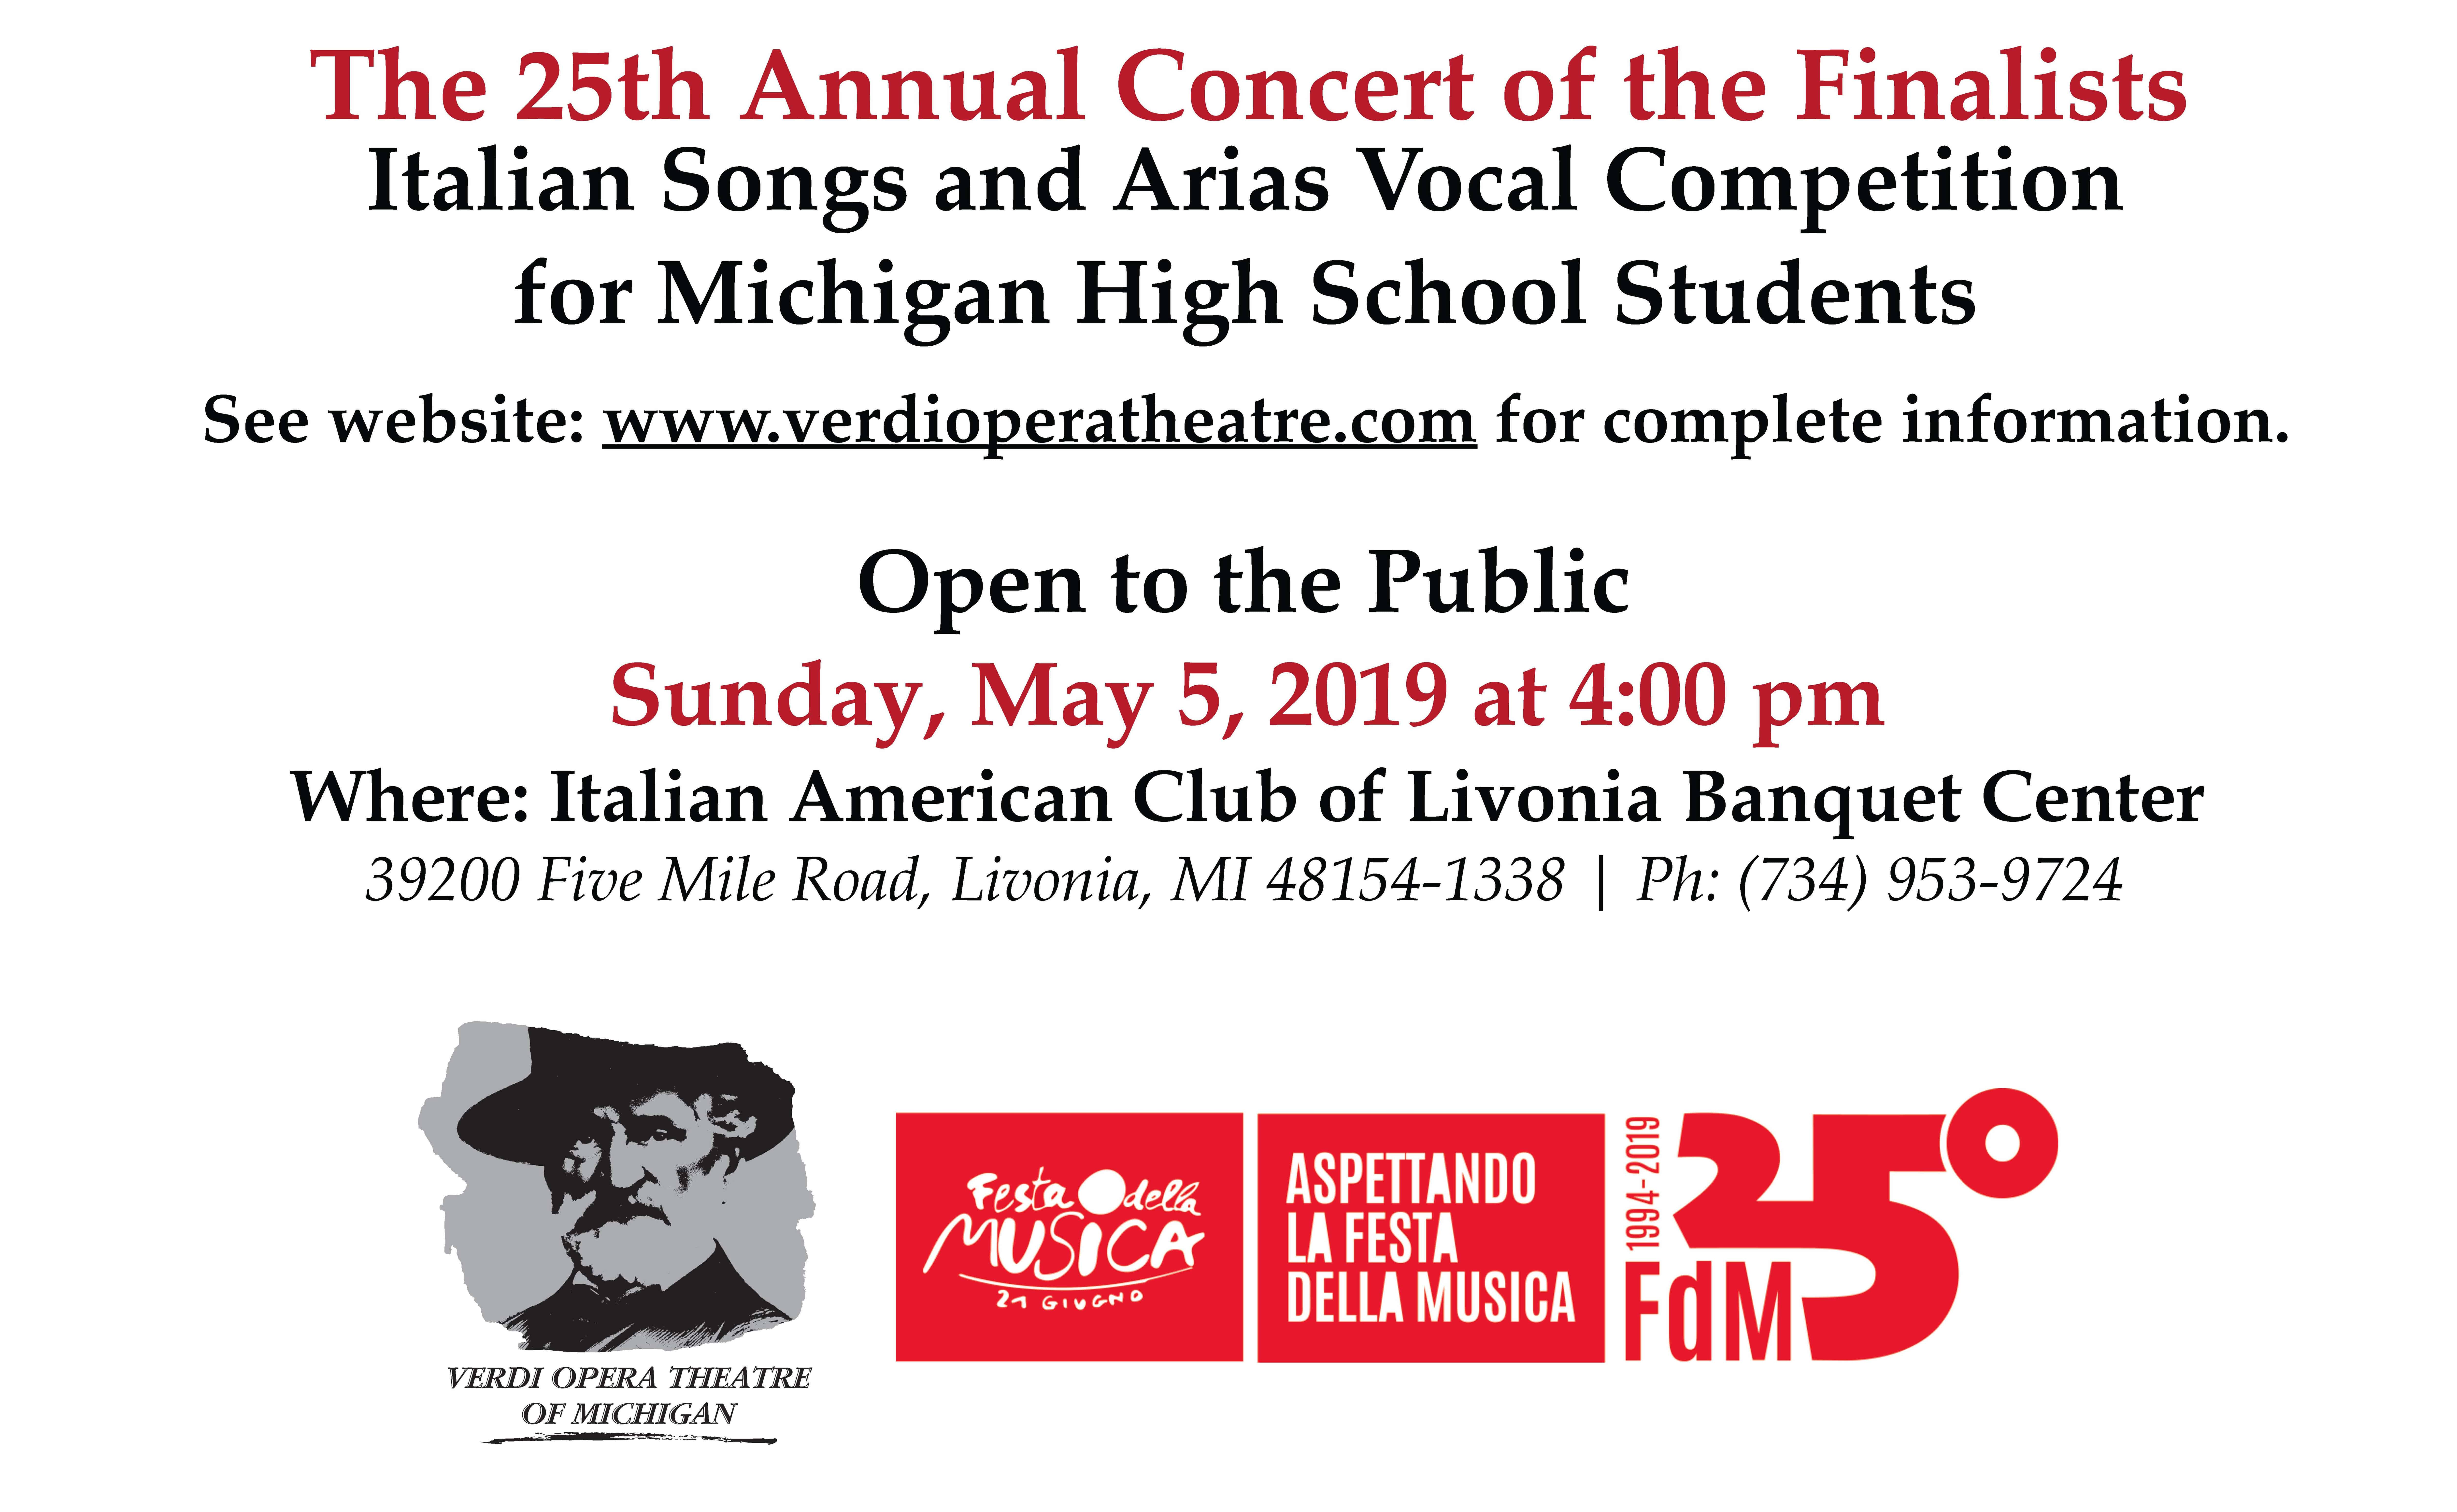 The 25th Annual Italian Songs and Arias Vocal Competition